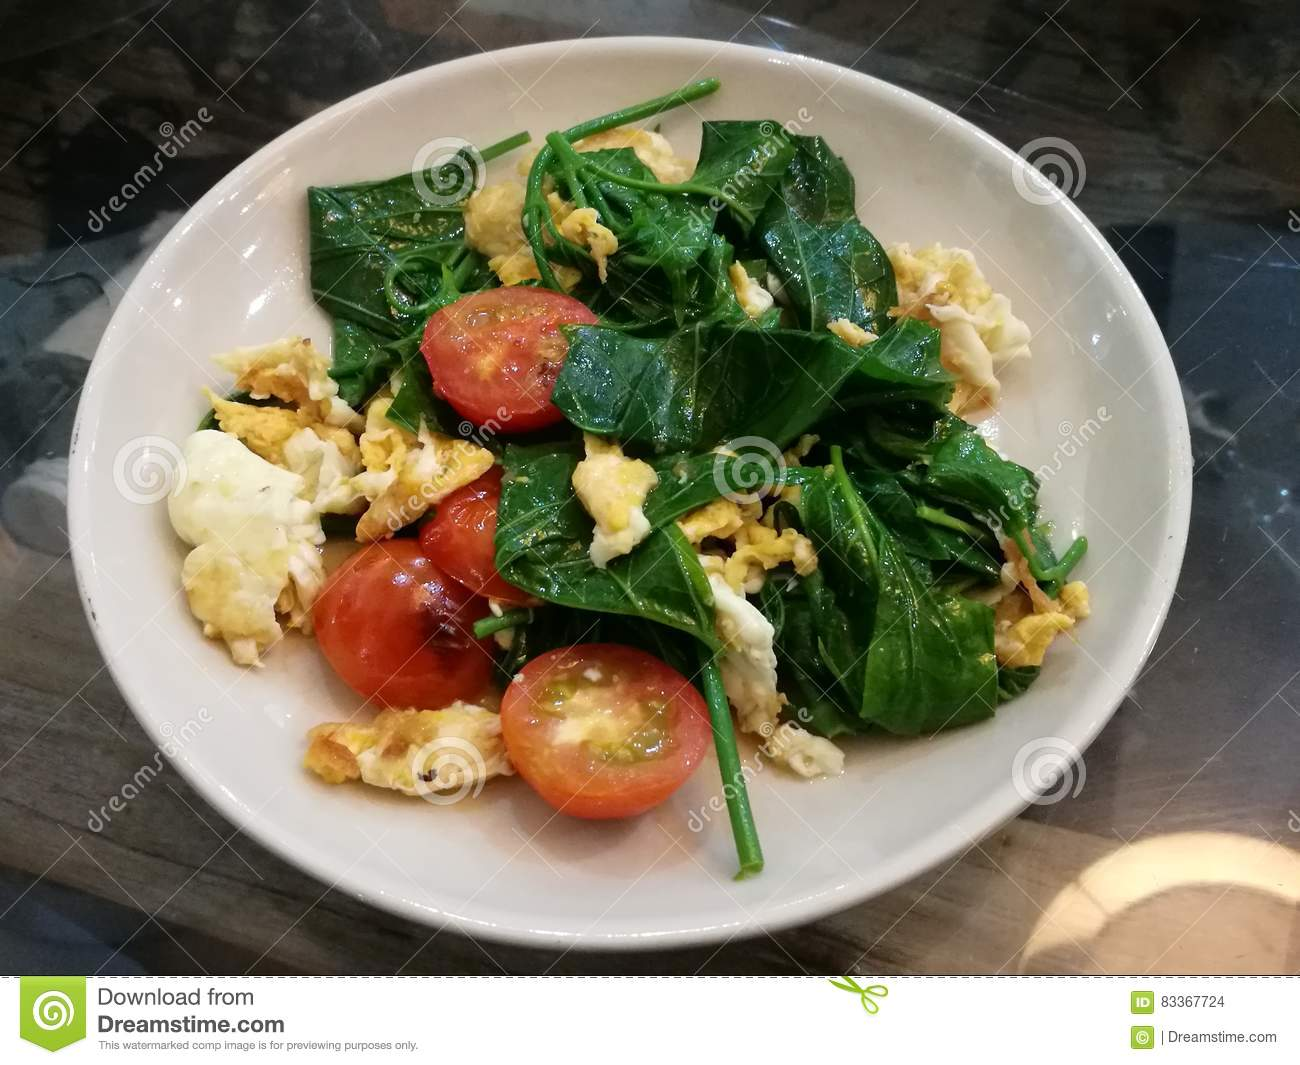 Close-up Healthy Stir-fry Vegetable With Tomato And Egg For